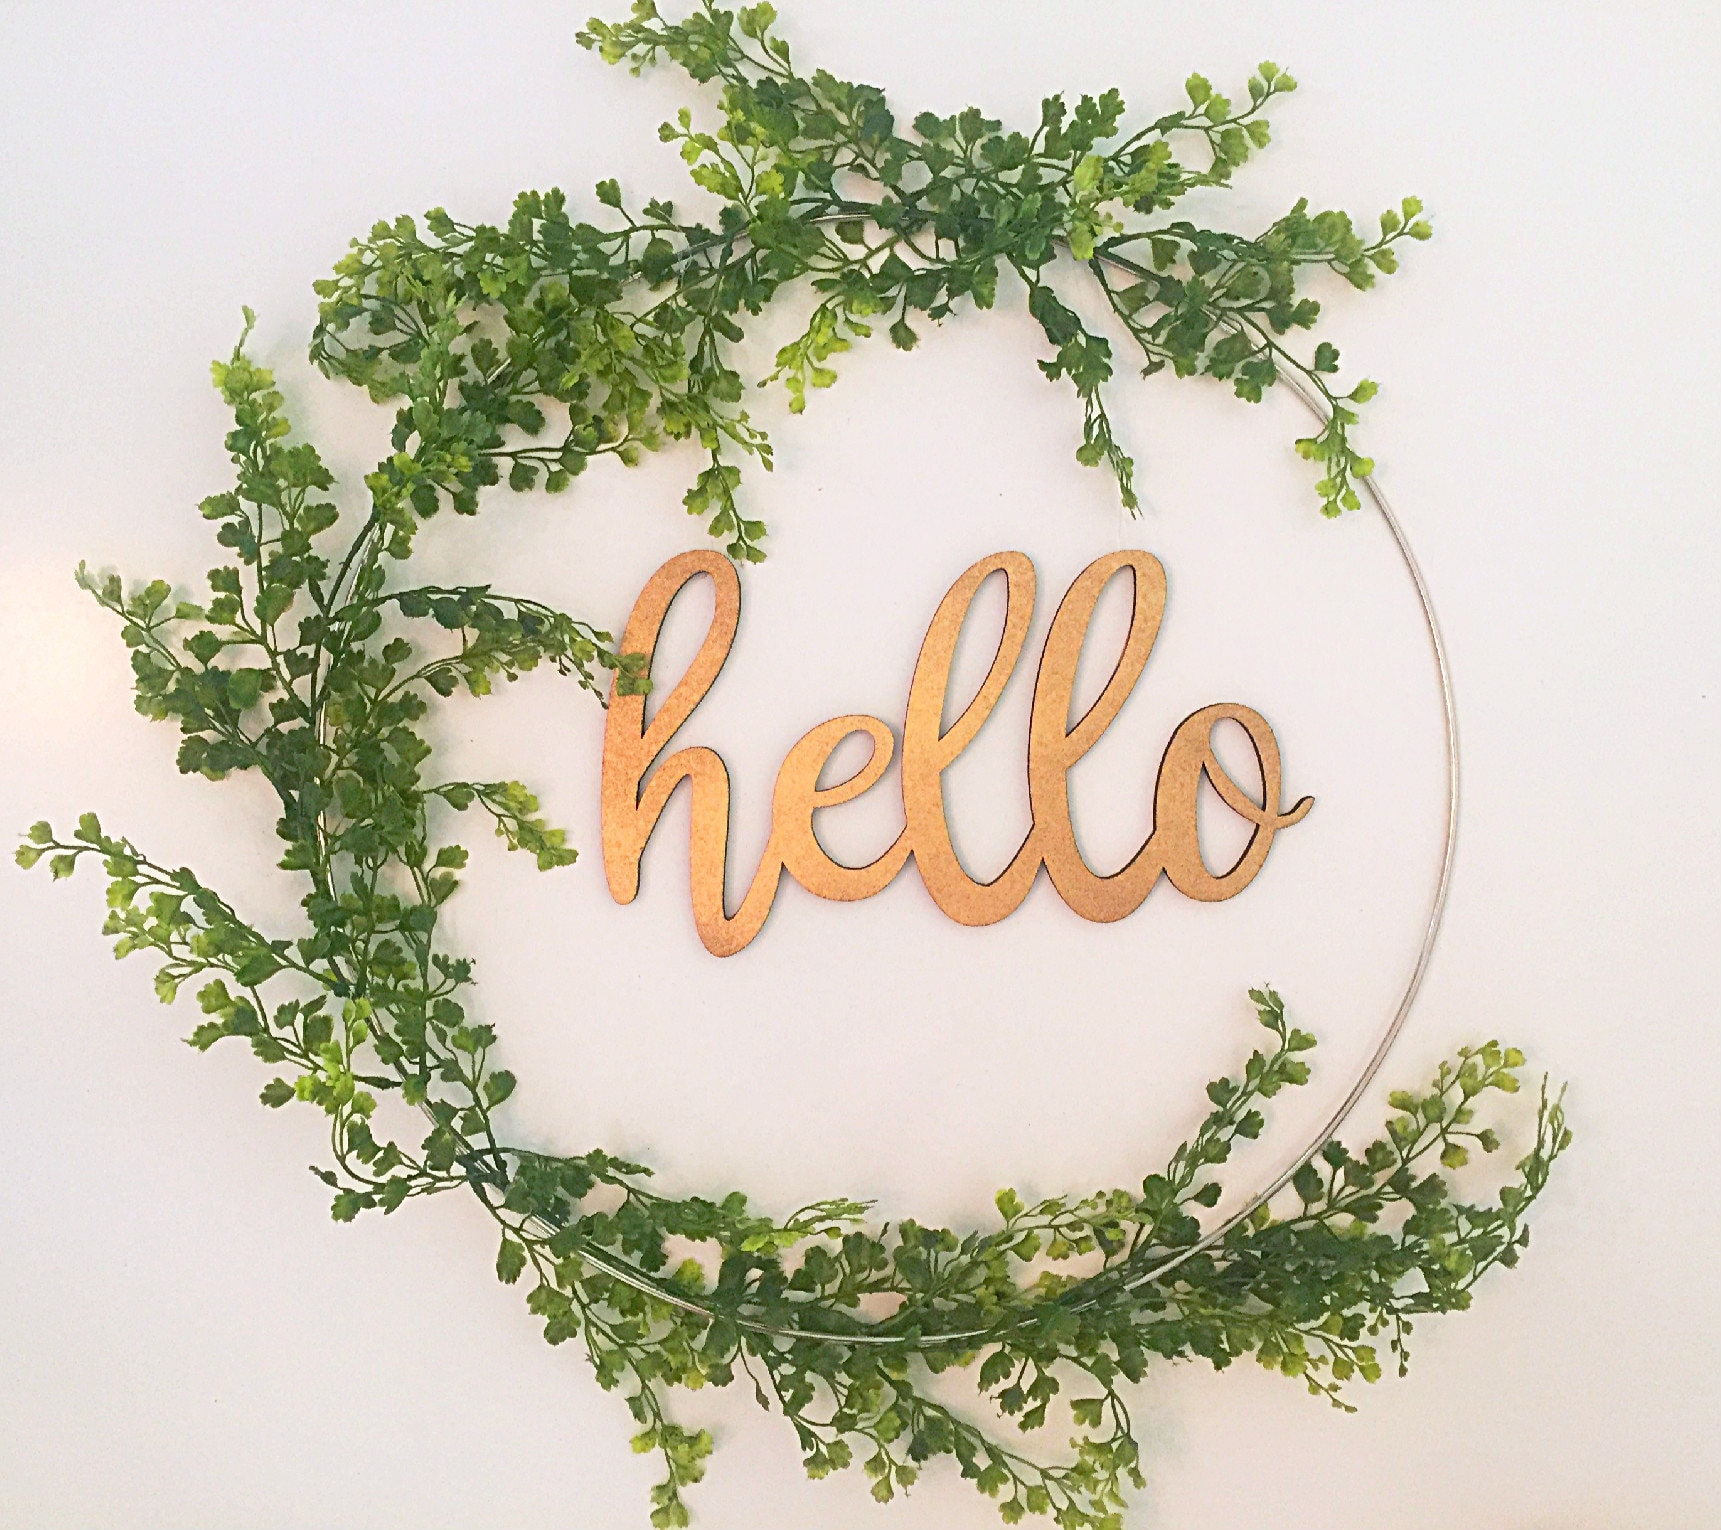 Oh Hello There Image Courtesy Etsy Er Yourhandmadewreath